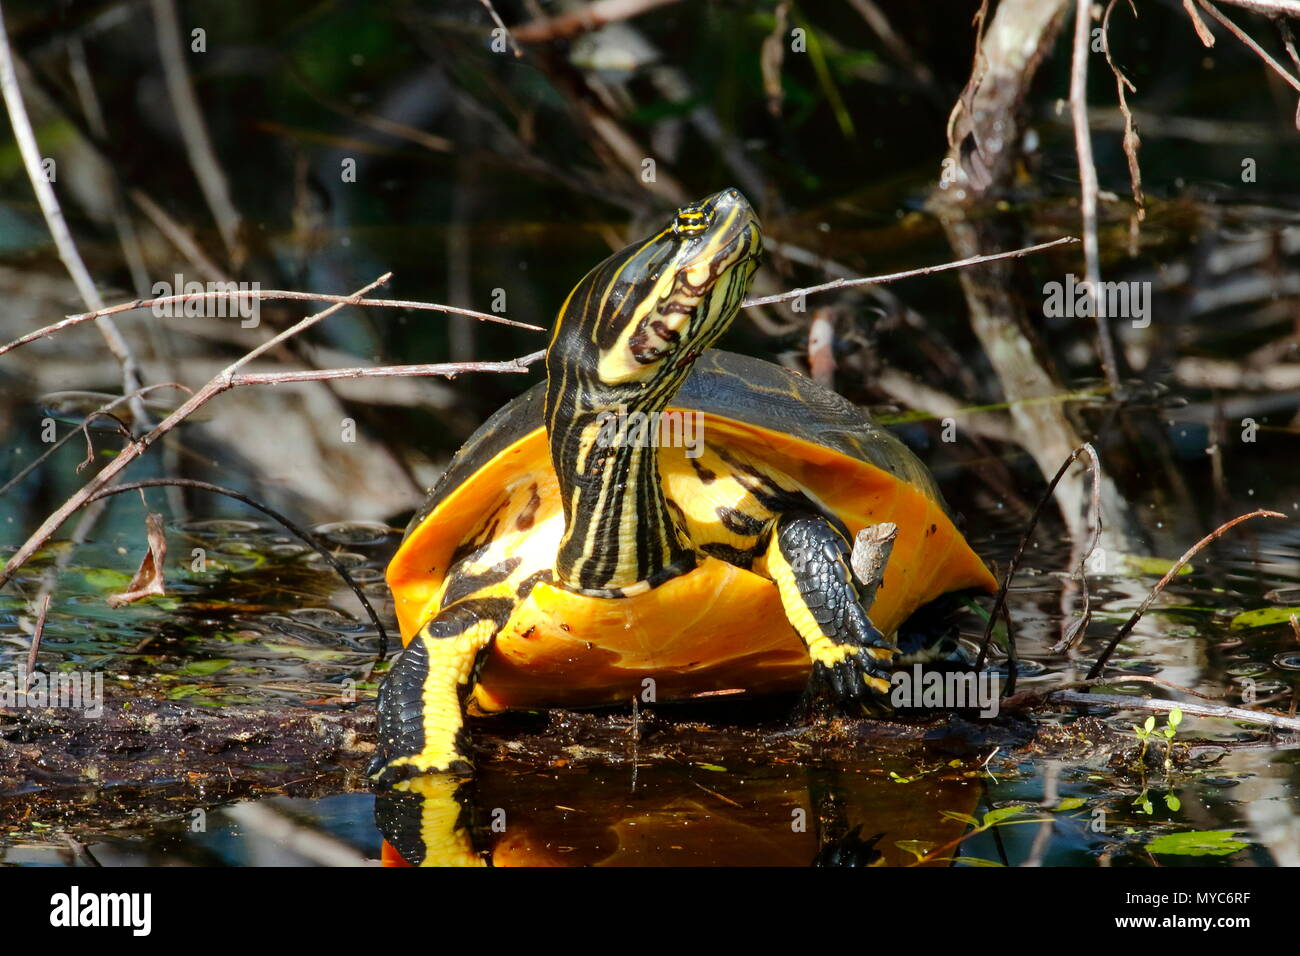 A chicken turtle, Deirochelys reticularia, basking on a log. - Stock Image